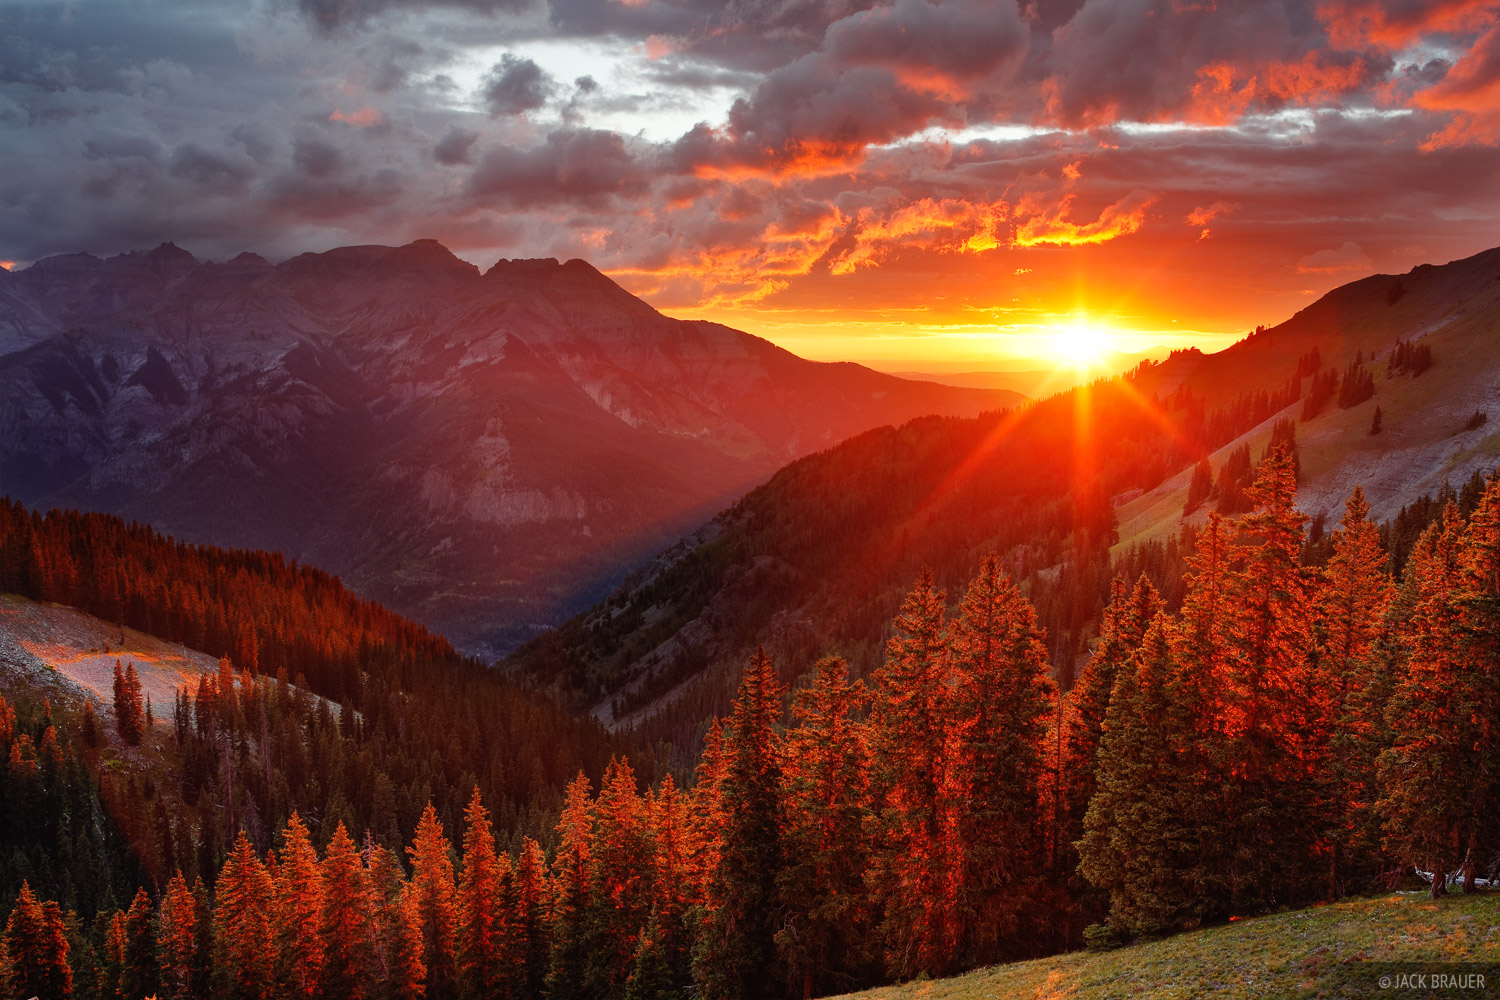 sunset, San Juan Mountains, Colorado, photo